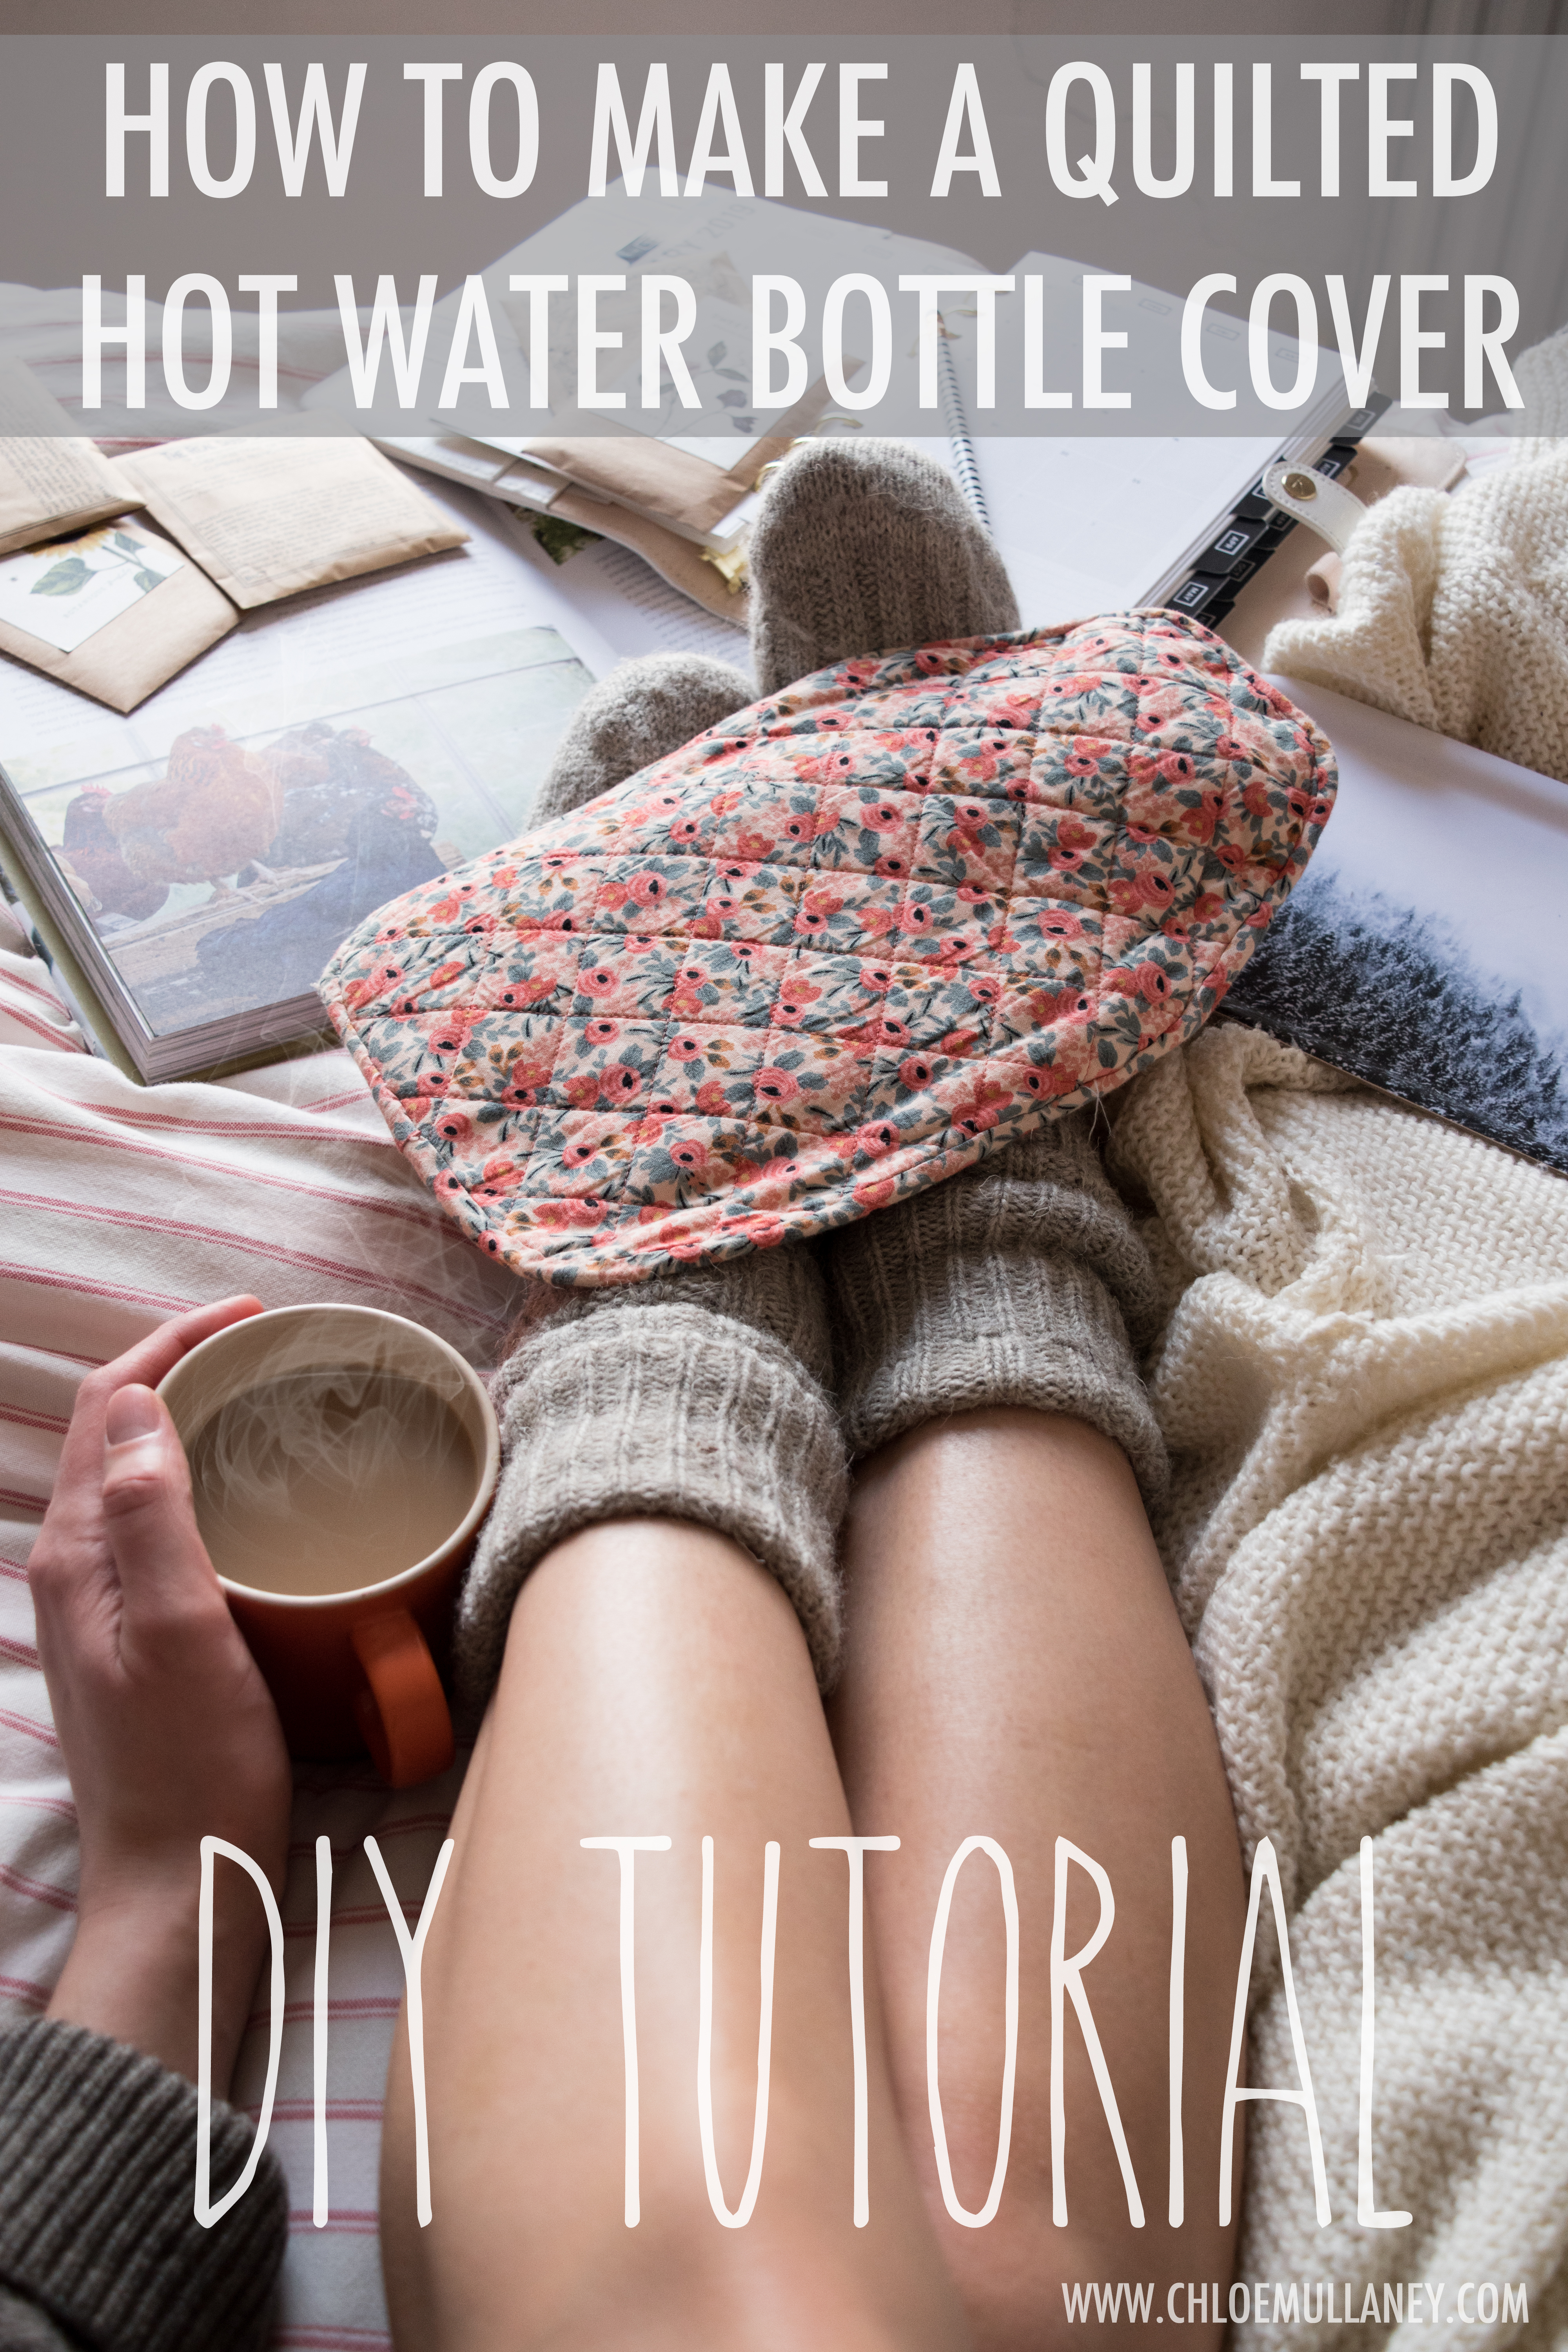 How-To-Make-A-Quilted-Hot-Water-Bottle-DIY-Tutorial-blog